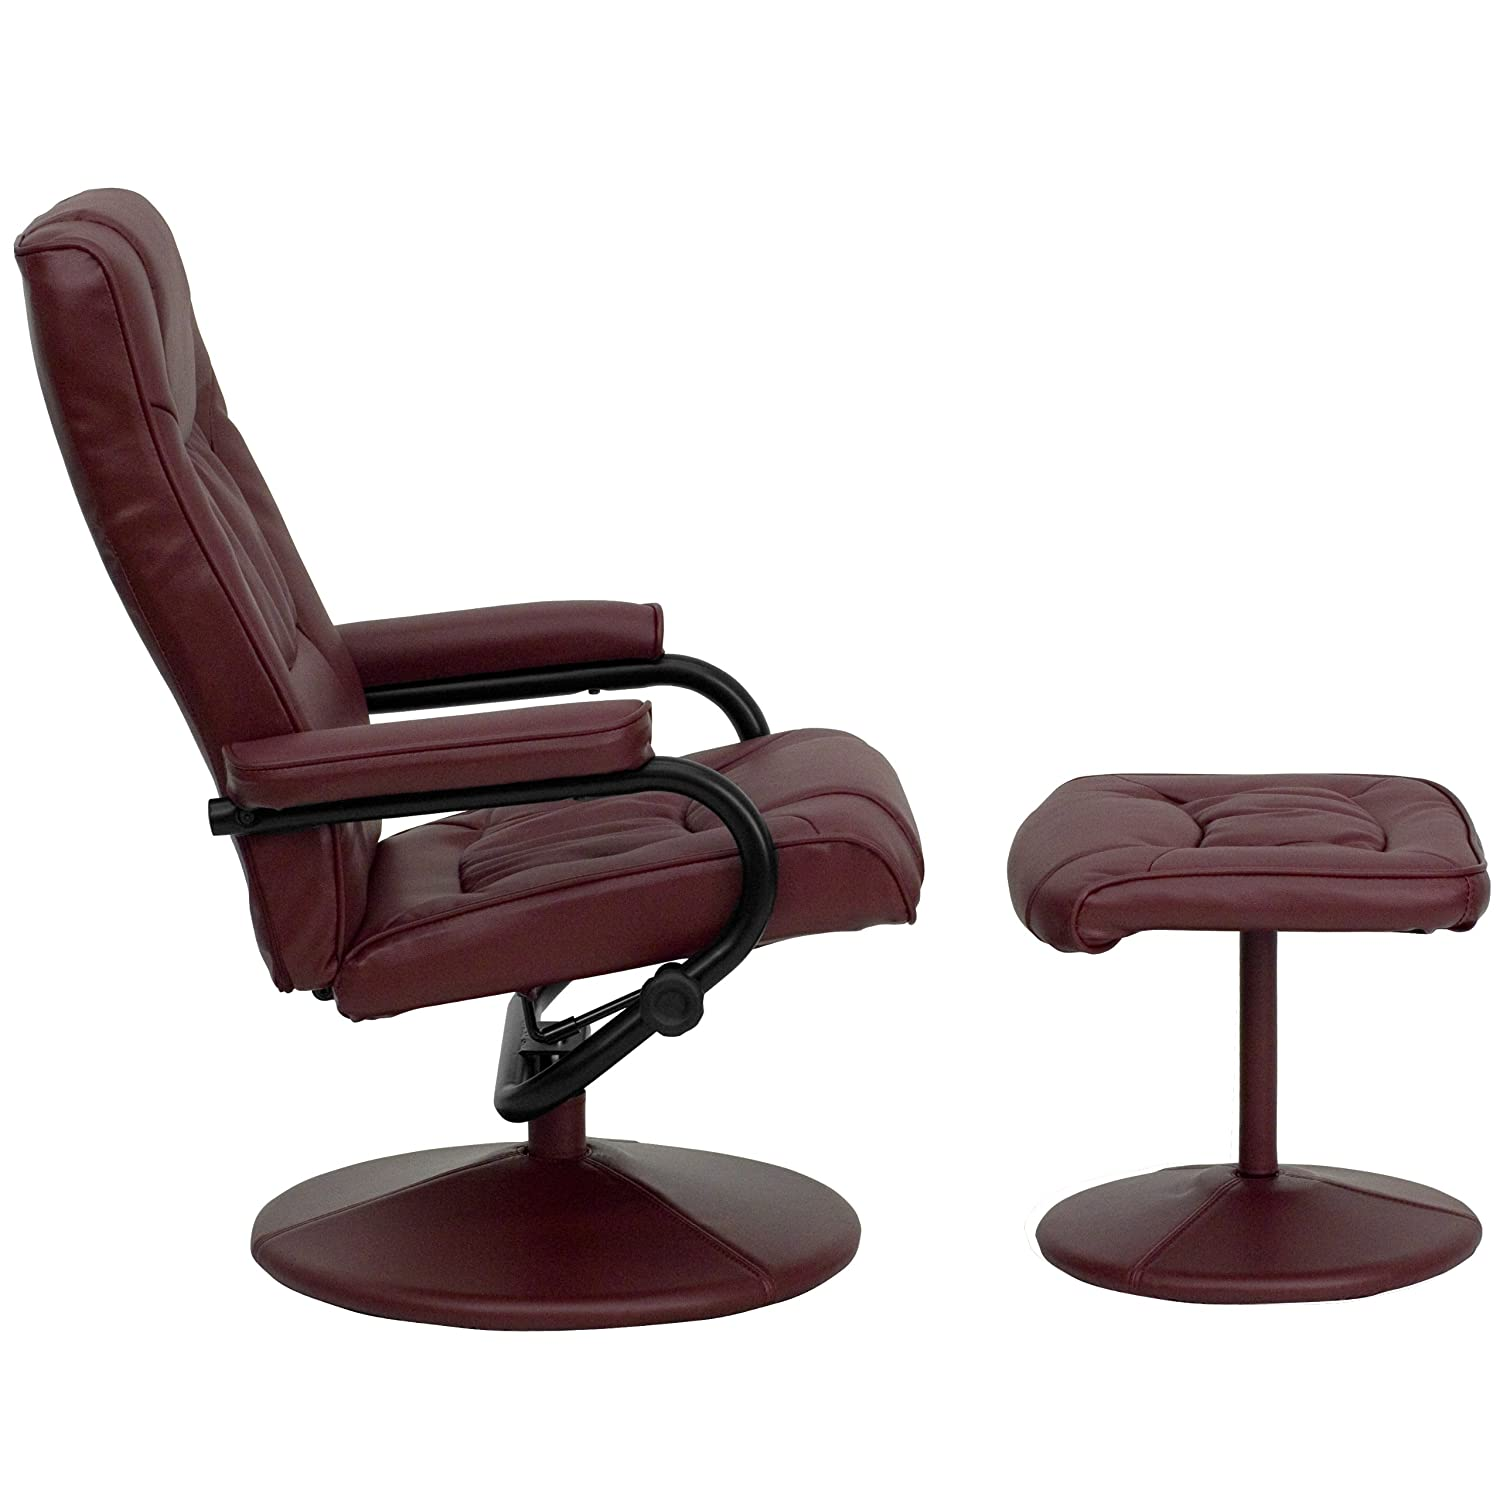 Amazon.com: MFO Contemporary Burgundy Leather Recliner and Ottoman with  Leather Wrapped Base: Kitchen & Dining - Amazon.com: MFO Contemporary Burgundy Leather Recliner And Ottoman